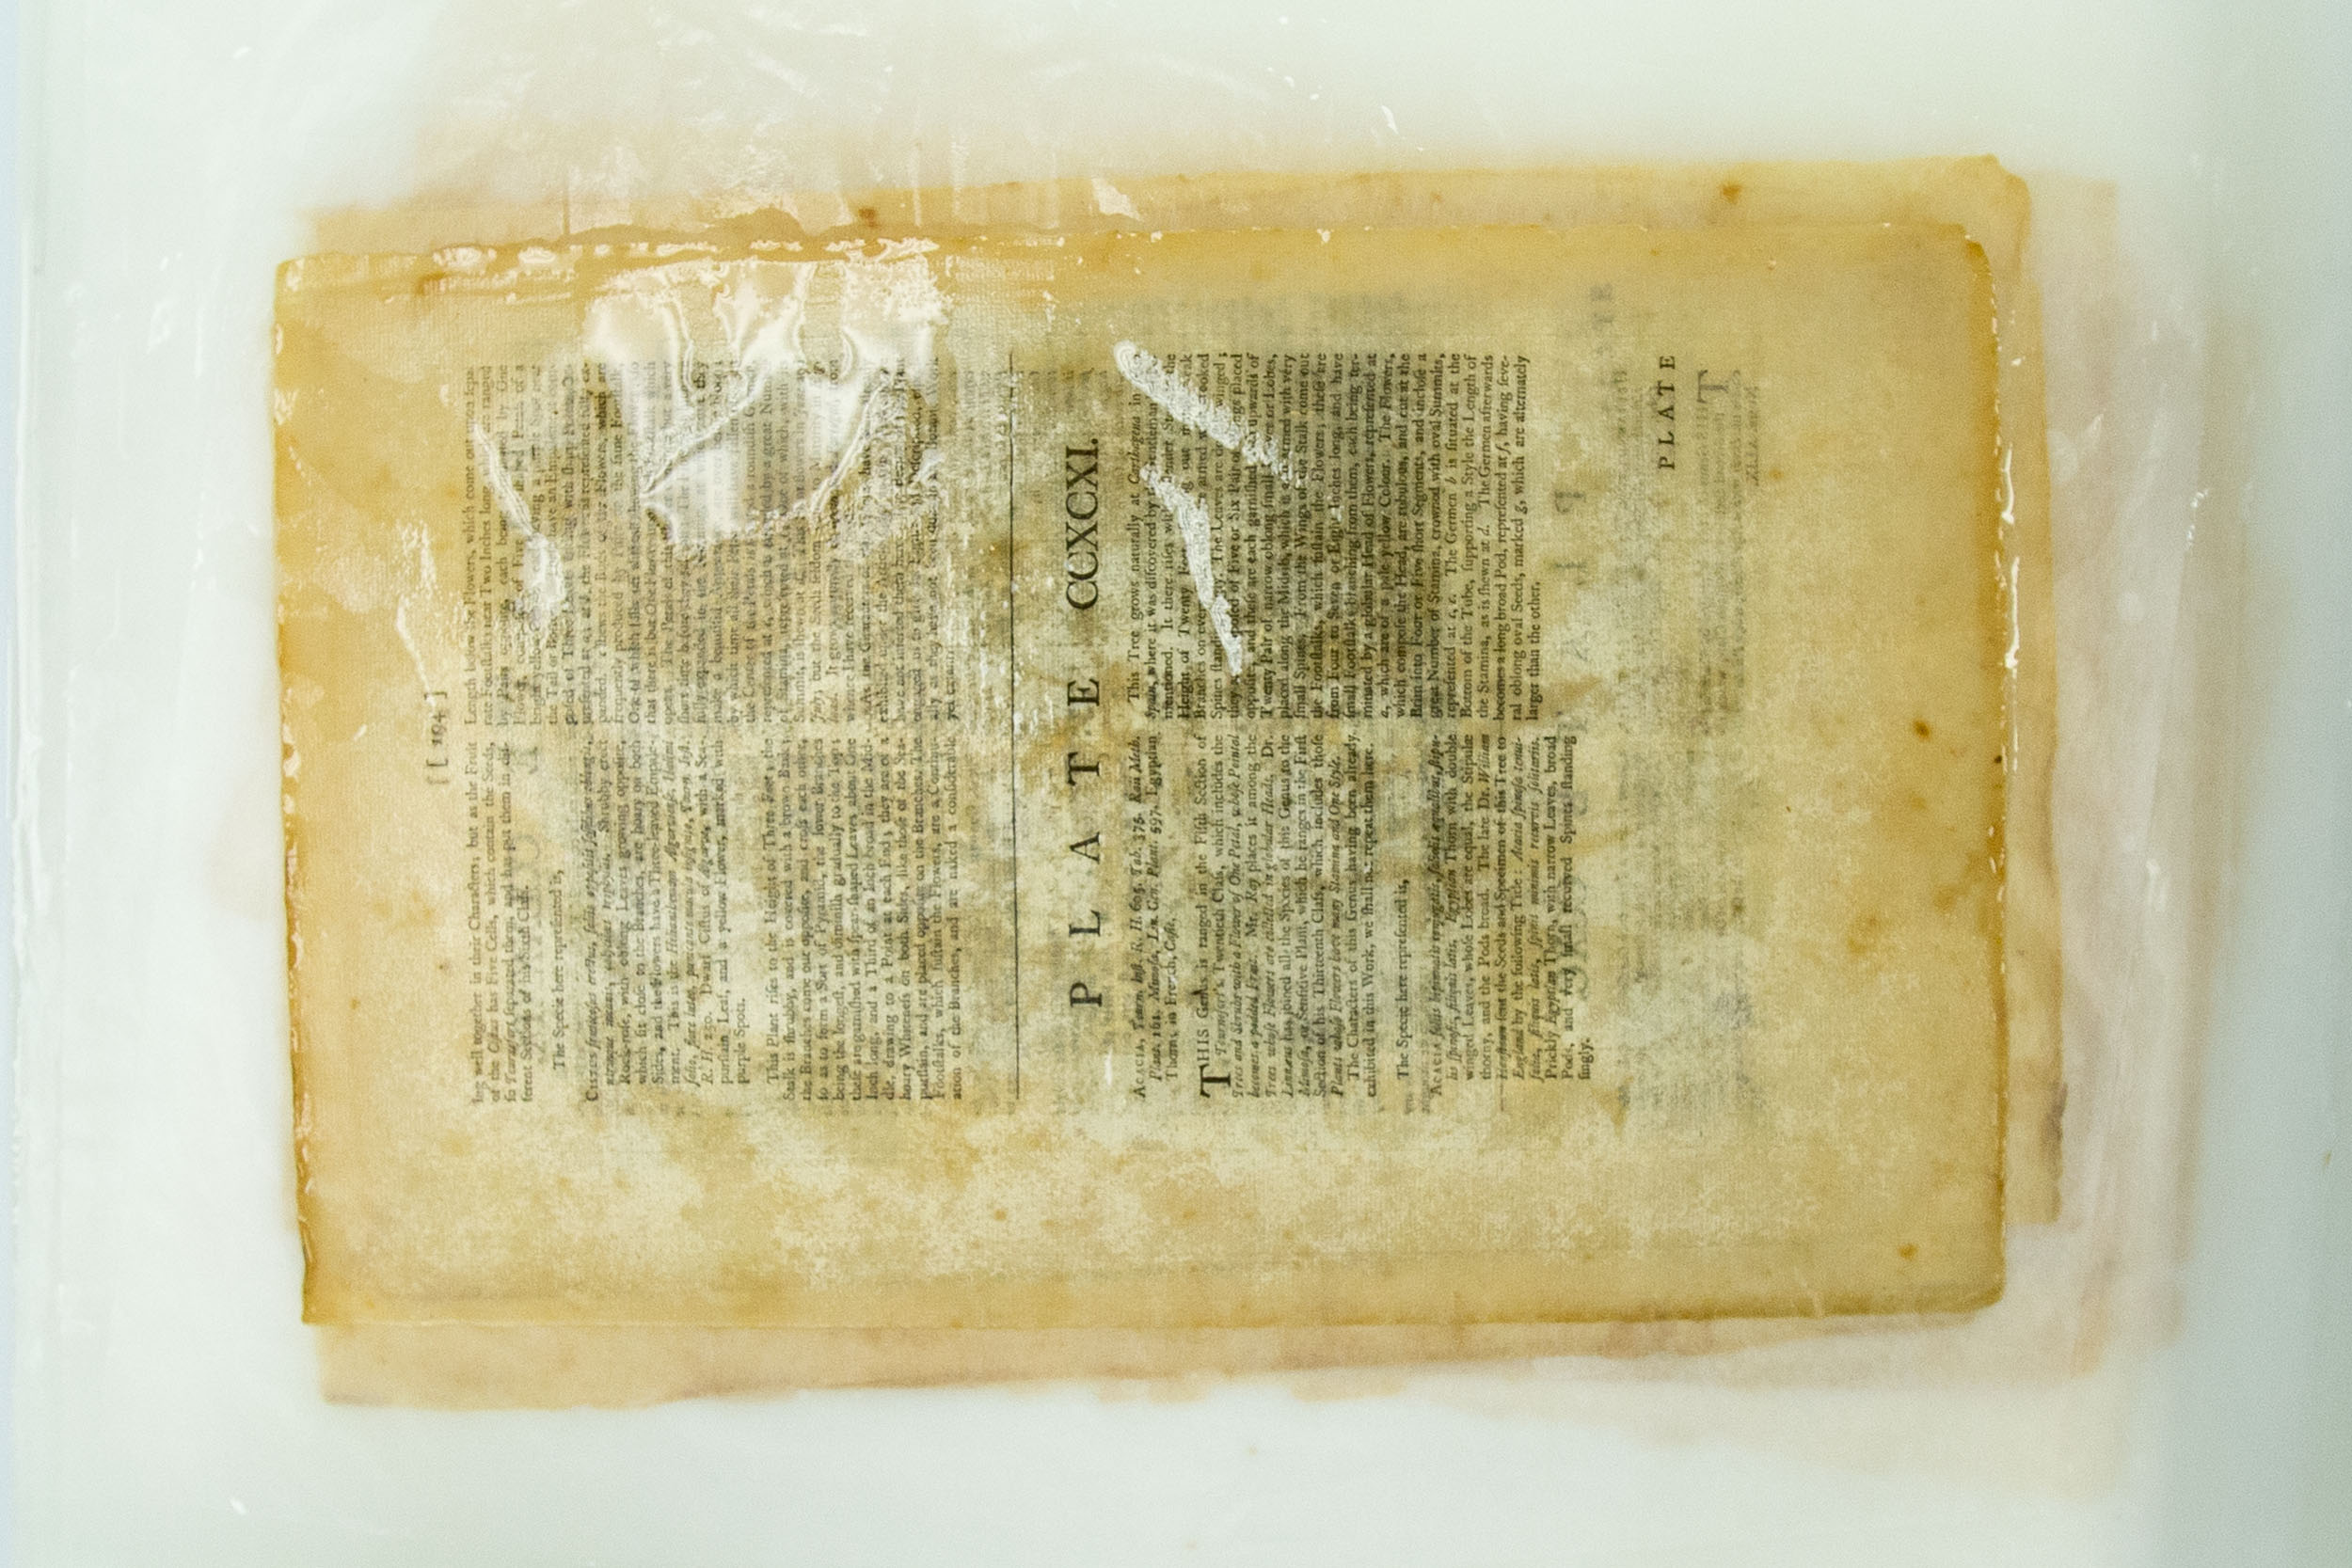 The hardier text pages are stacked and soaked together to remove impurities.